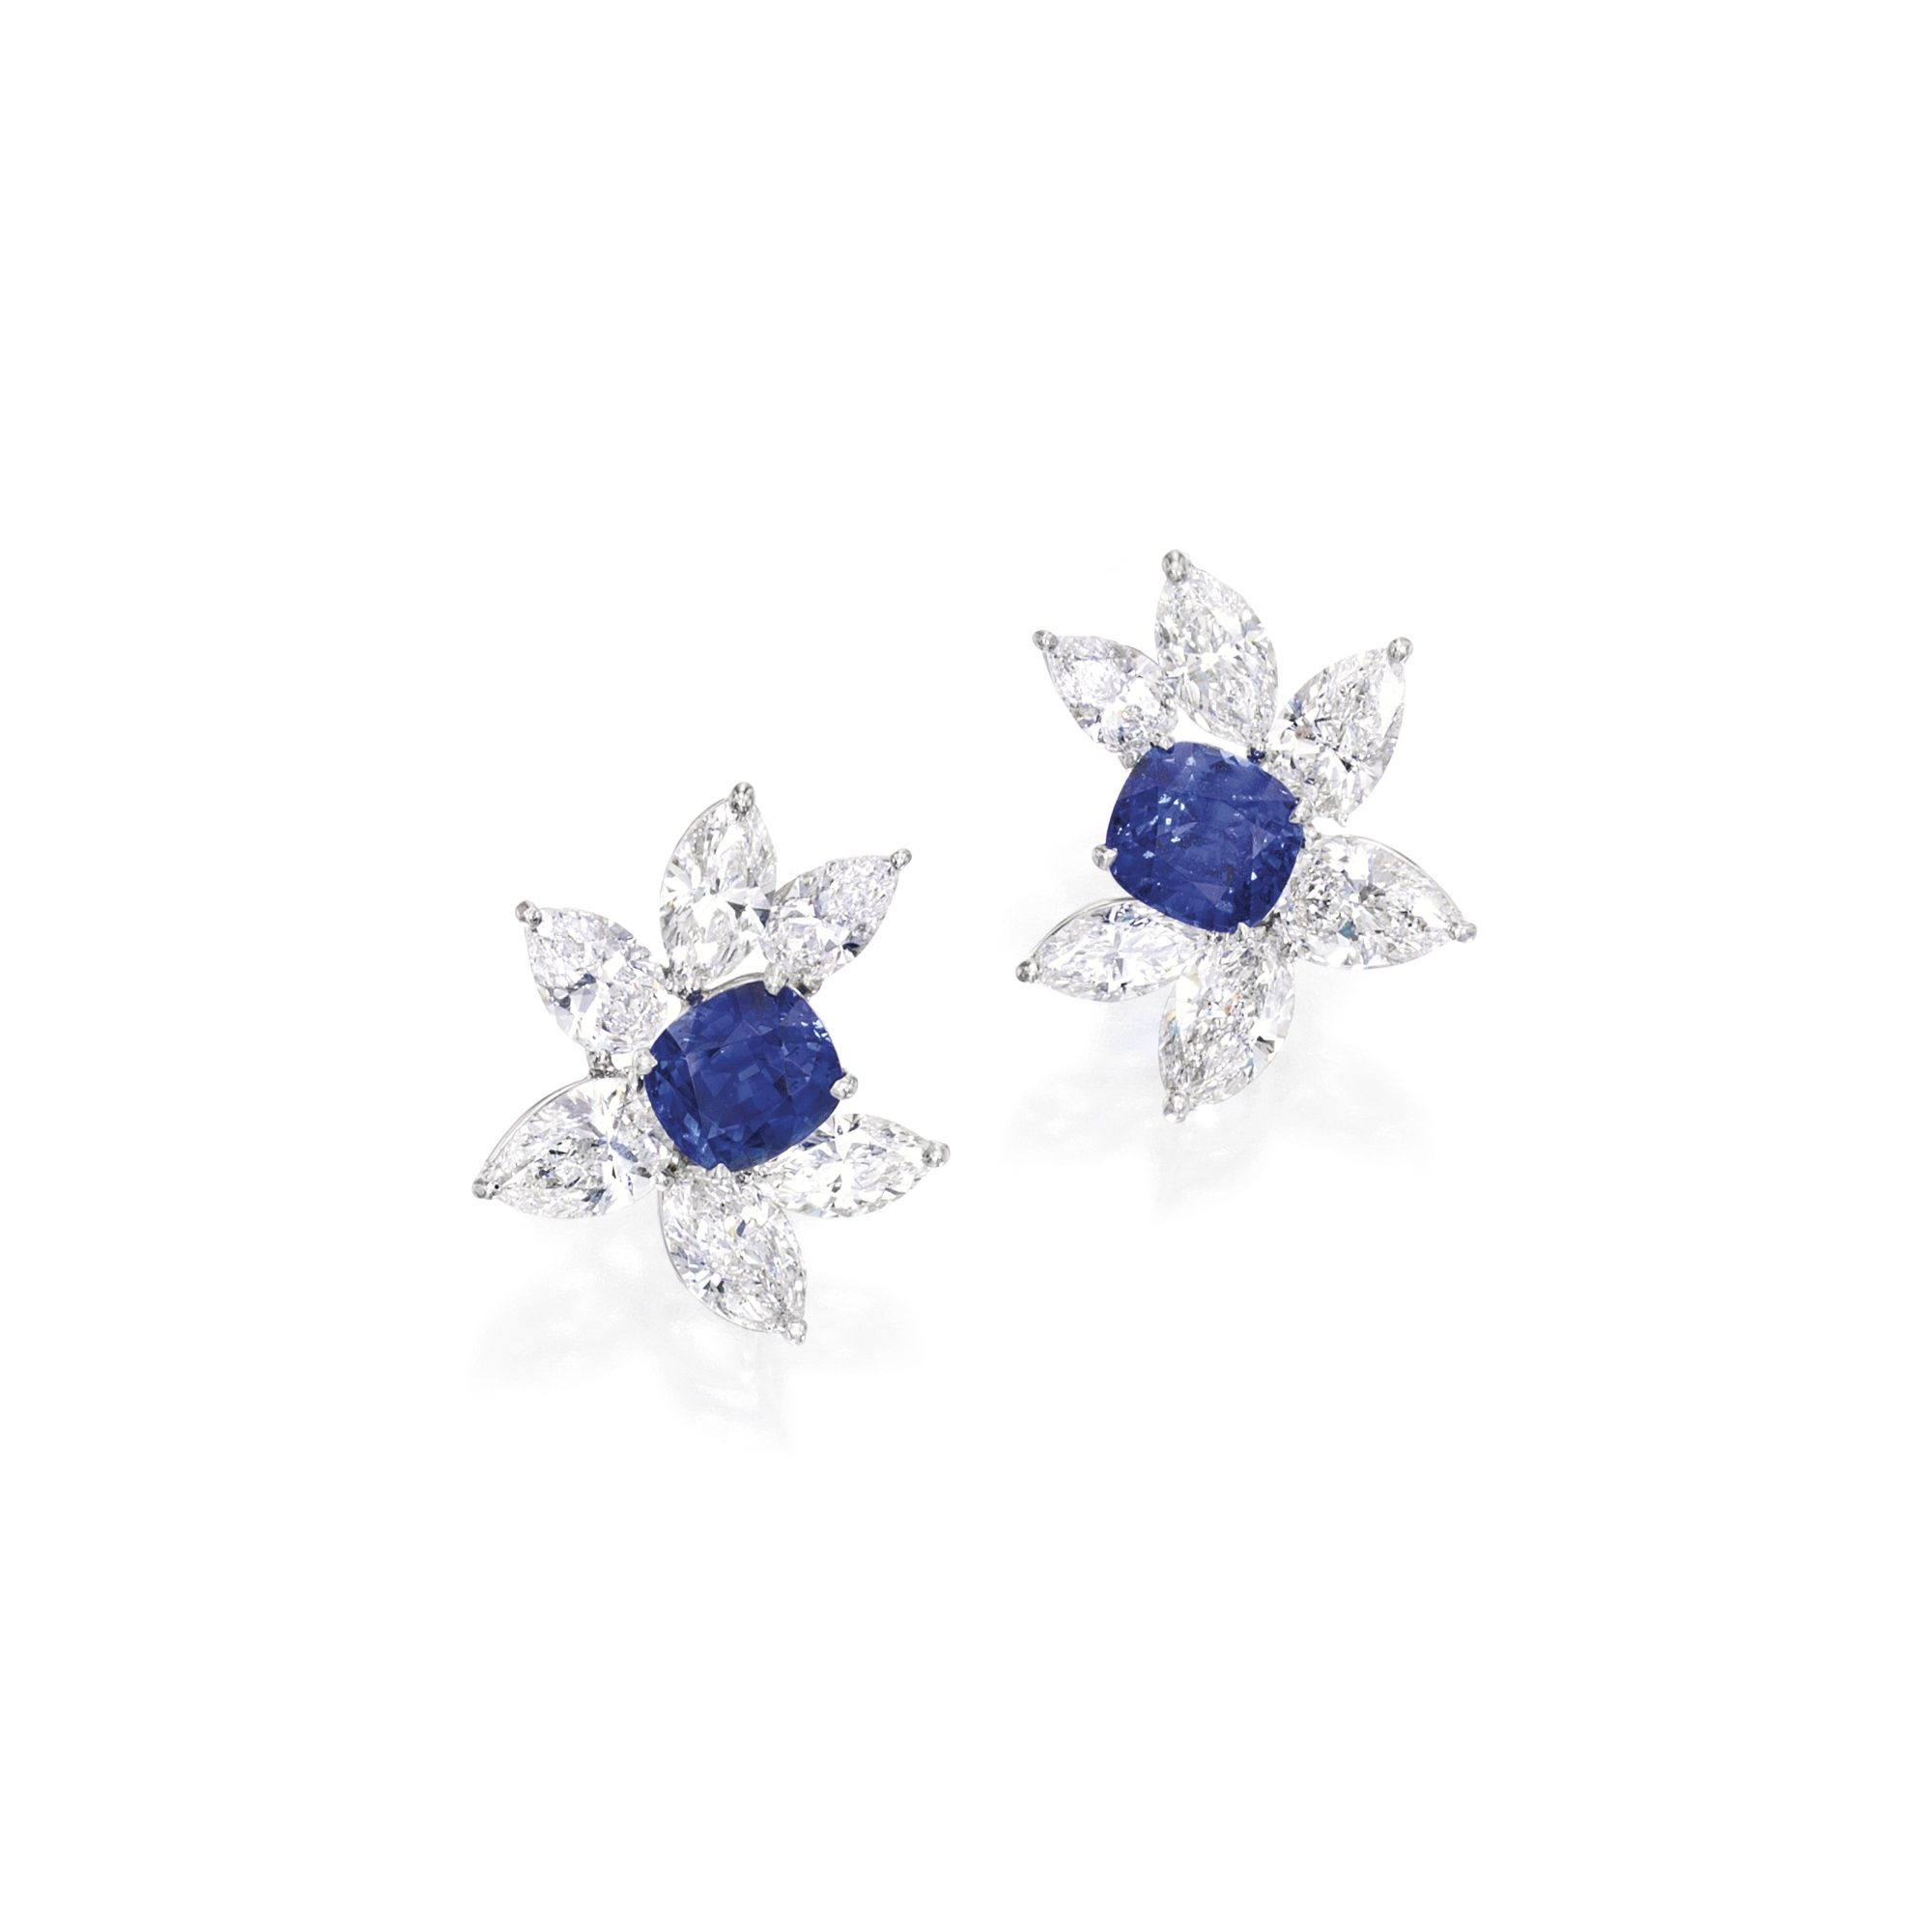 Pair Of Platinum Sapphire And Diamond Earrings Set With Two